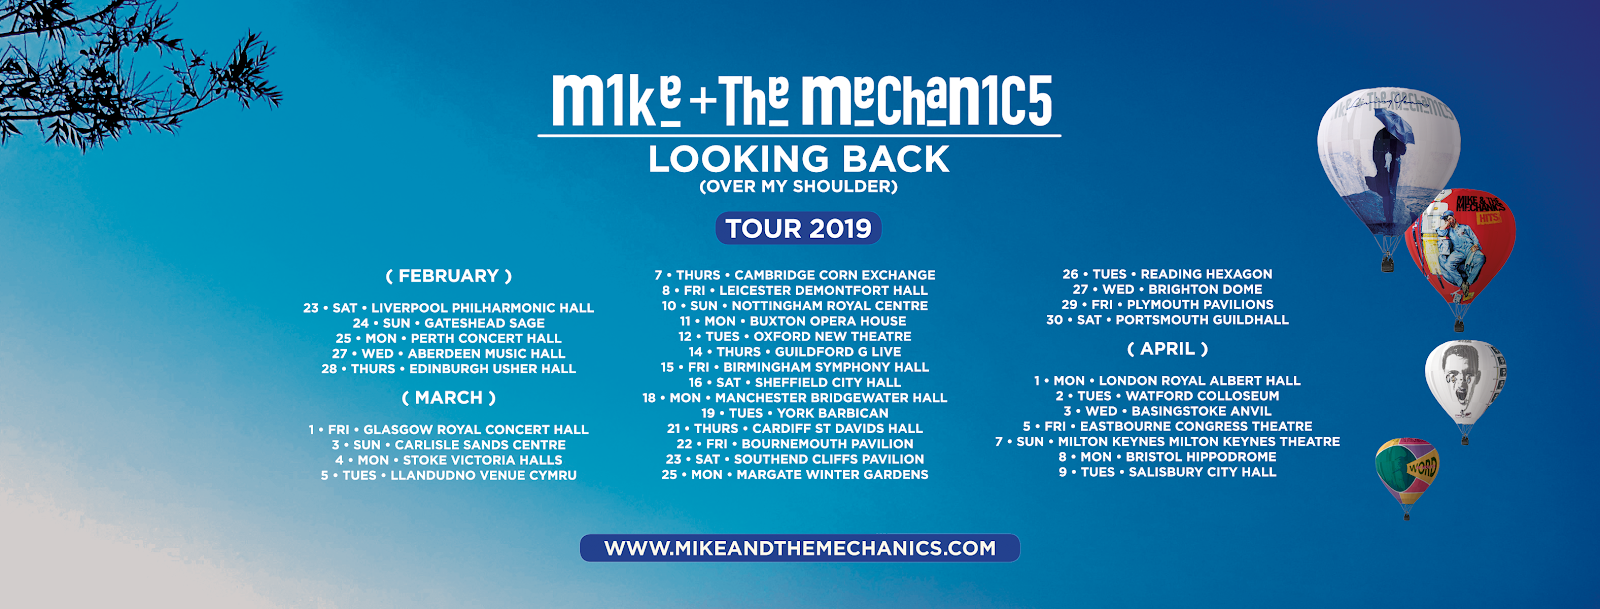 Mike & The Mechanics - Tour 2019